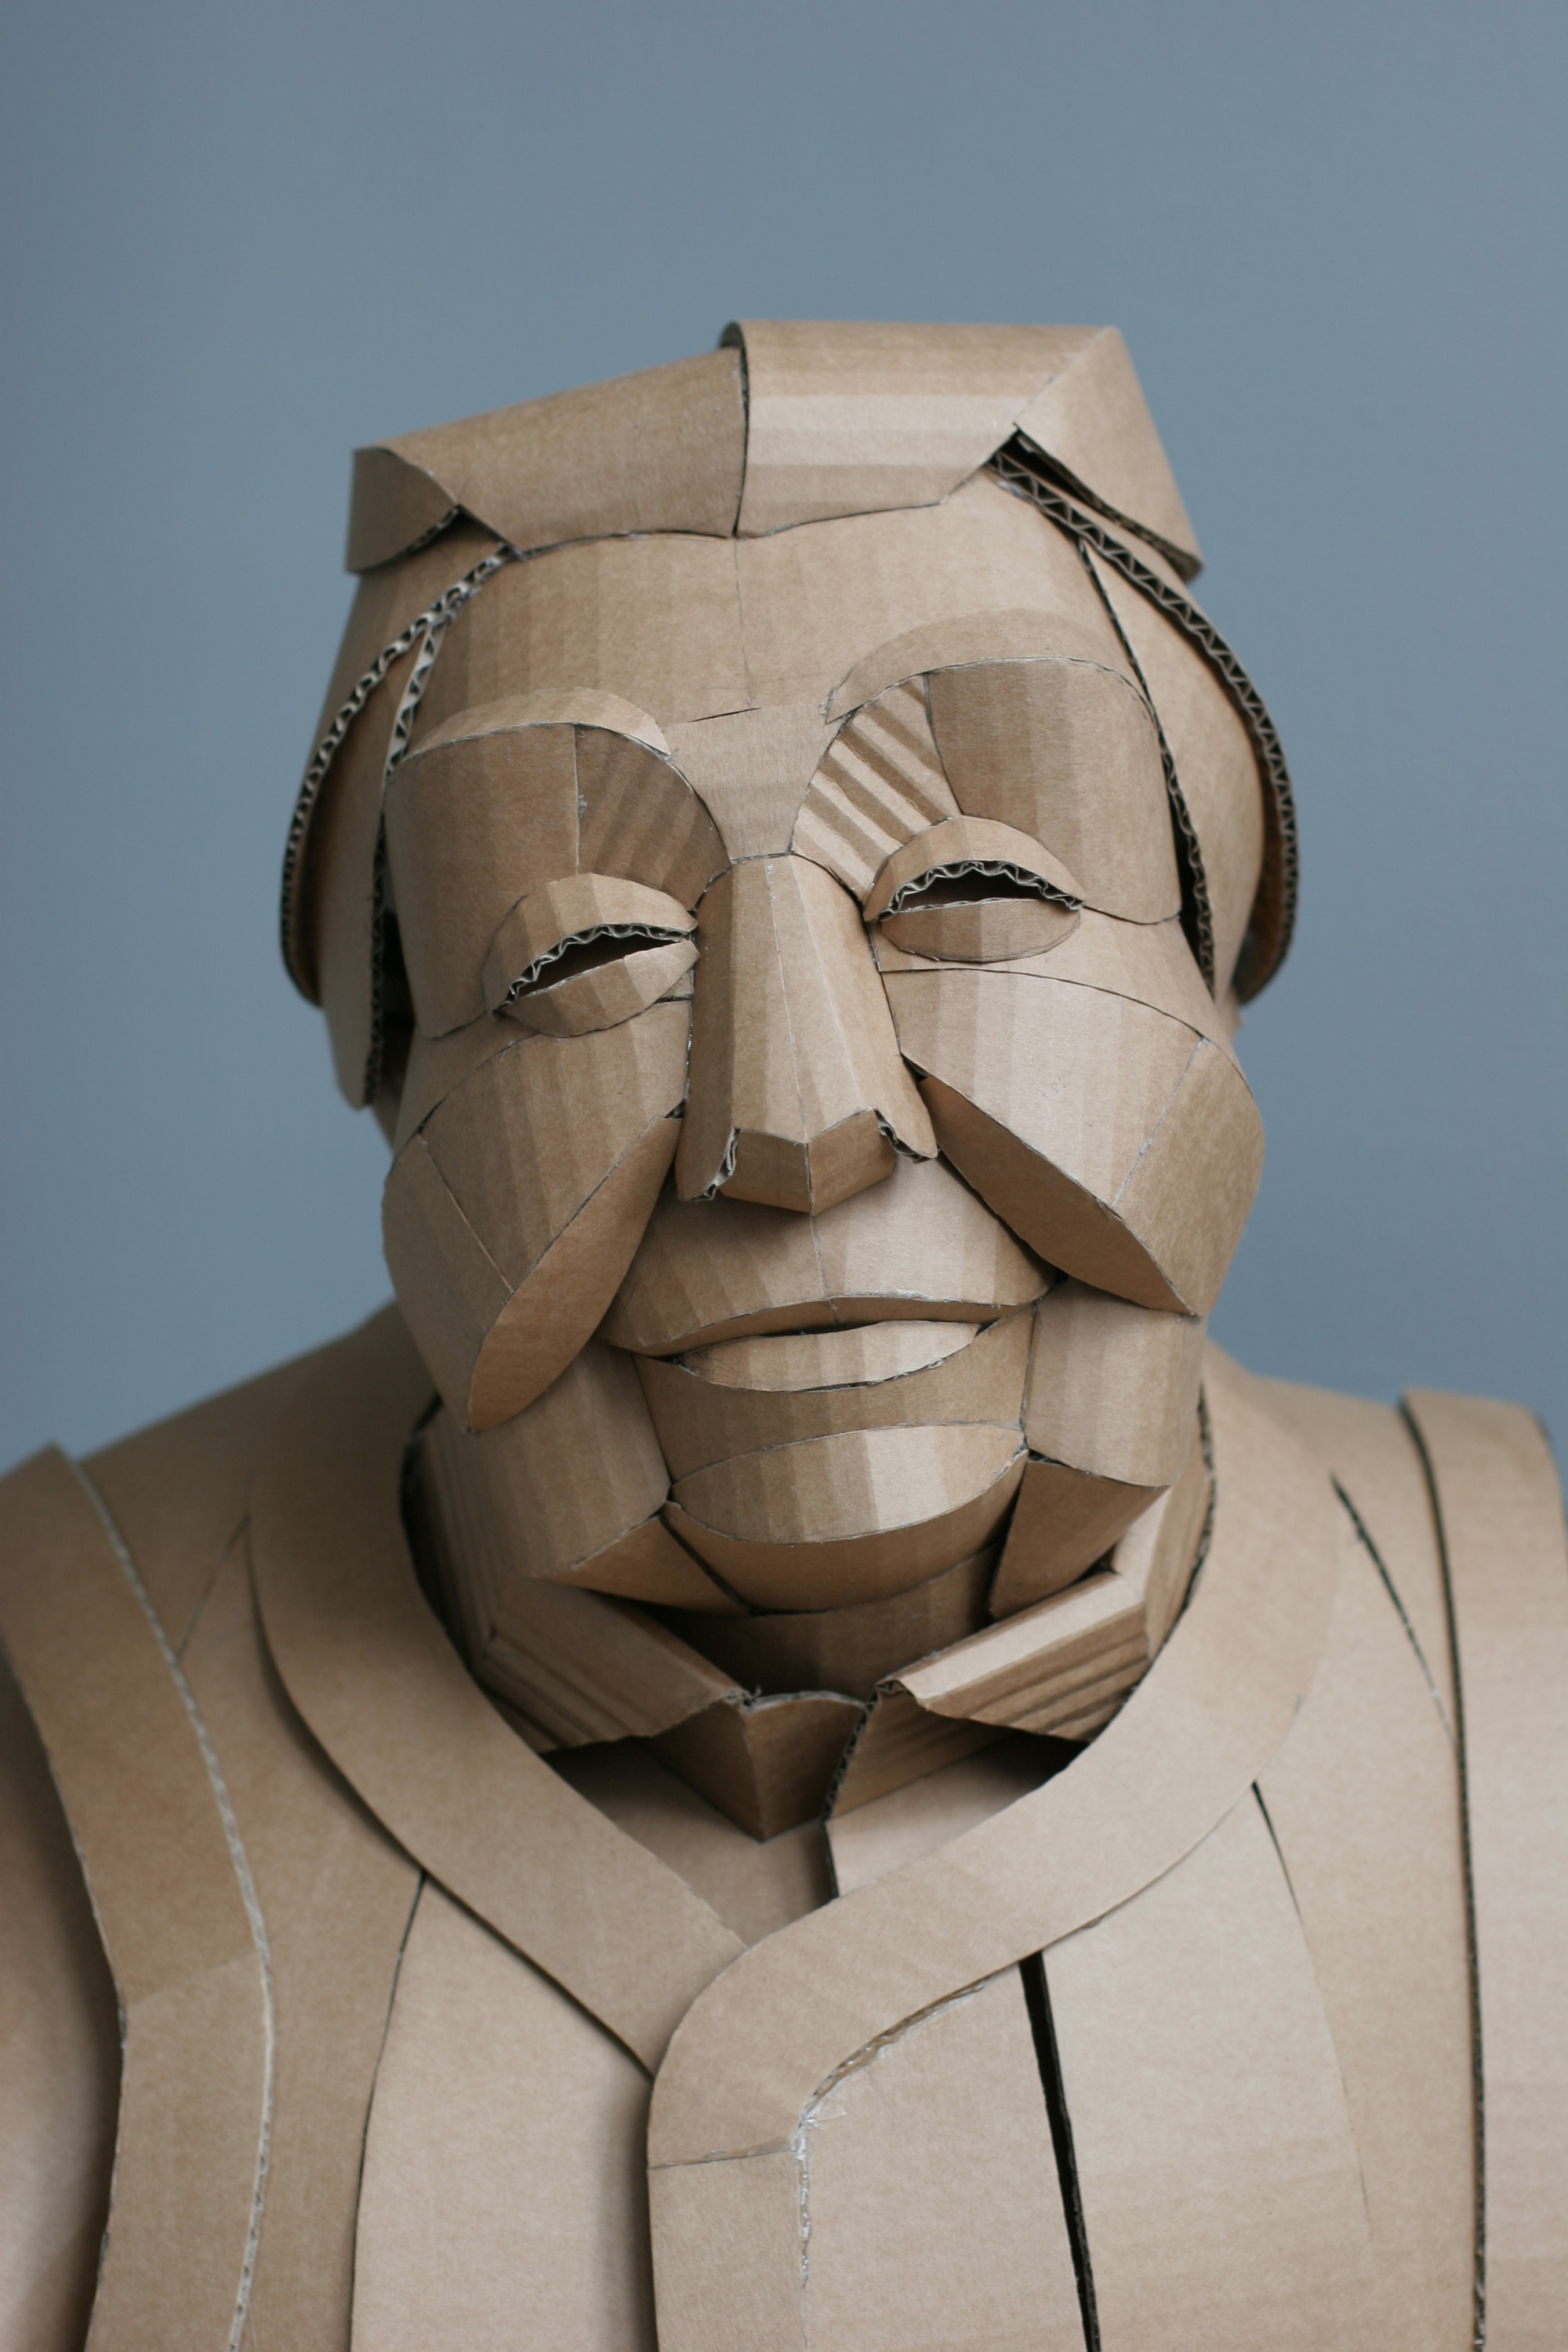 Warren King began sculpting with cardboard as an attempt to add fantasy to the lives of his children